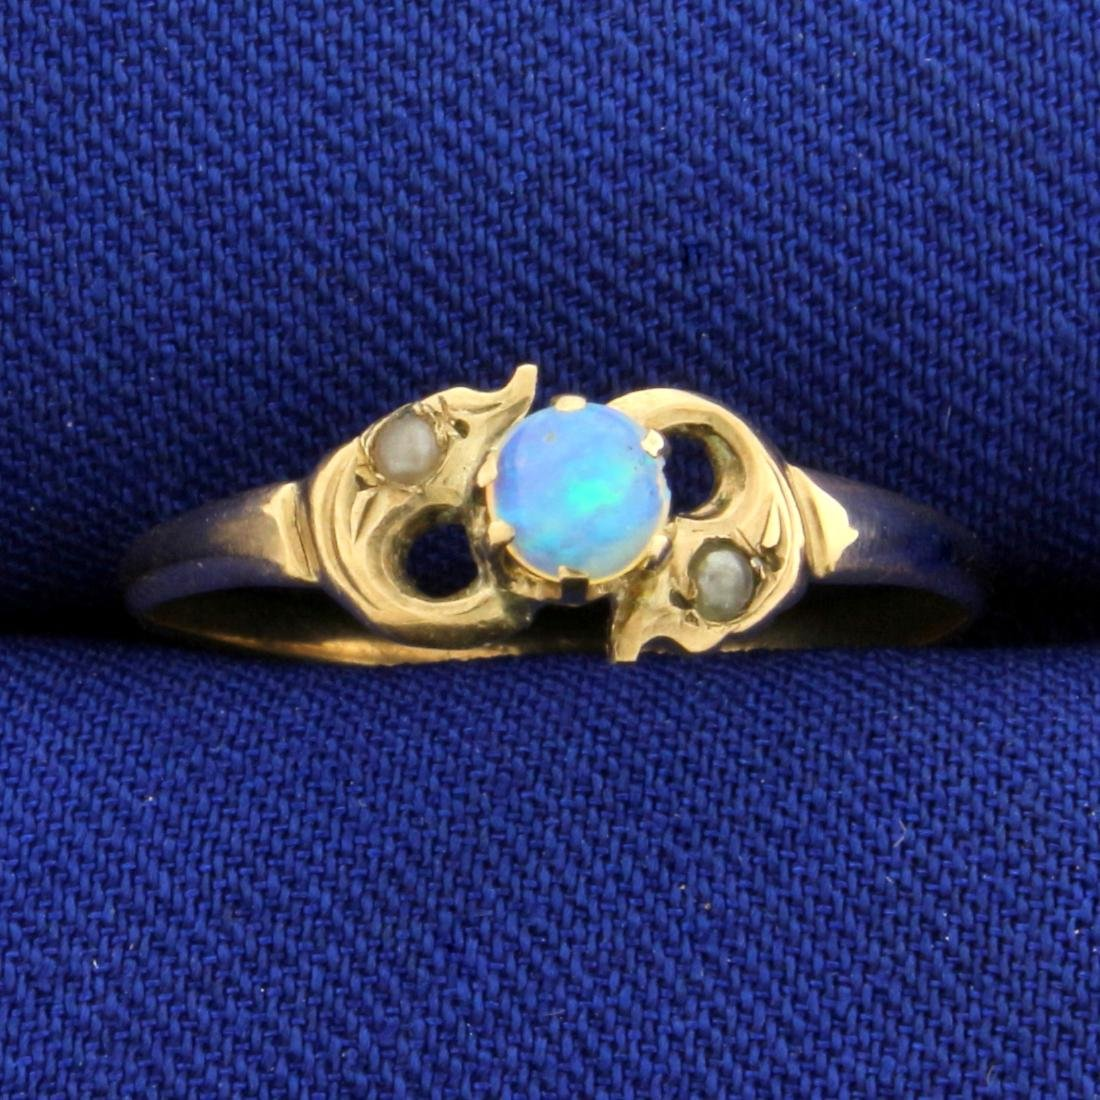 Vintage Opal and Seed Pearl Ring in 10K Rose Gold